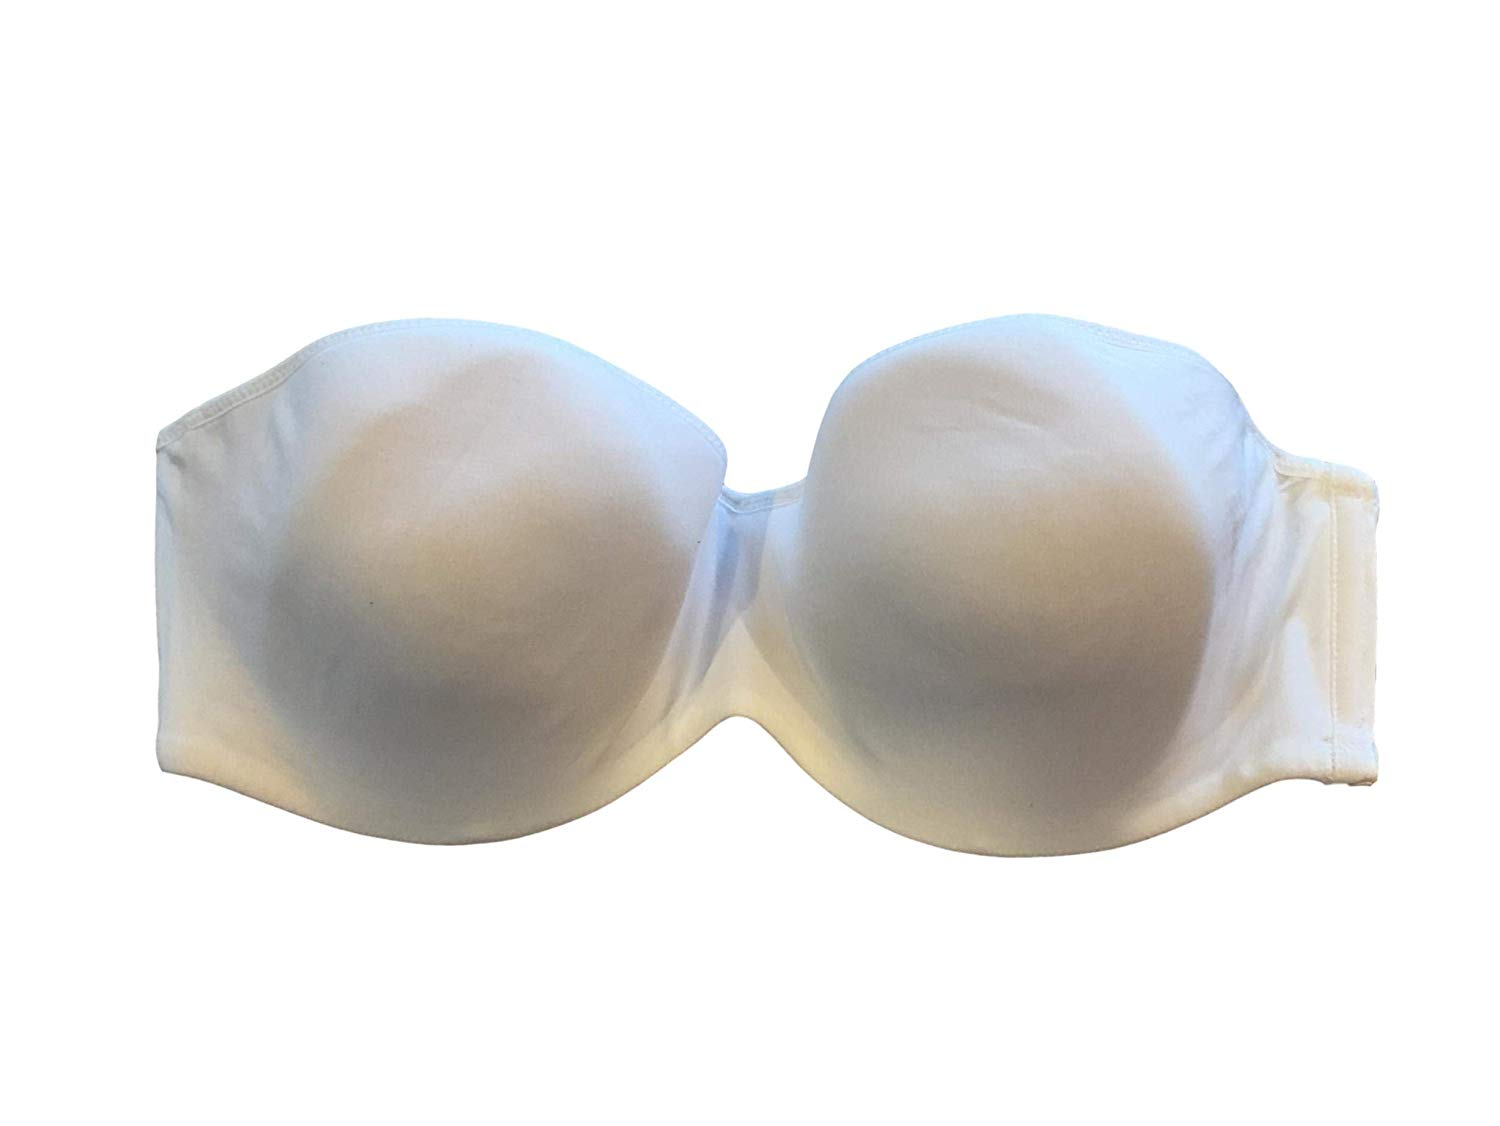 66a5871131 Get Quotations · Wonderbra Strapless Stretch Foam Bra Several Styles    Colors (32A